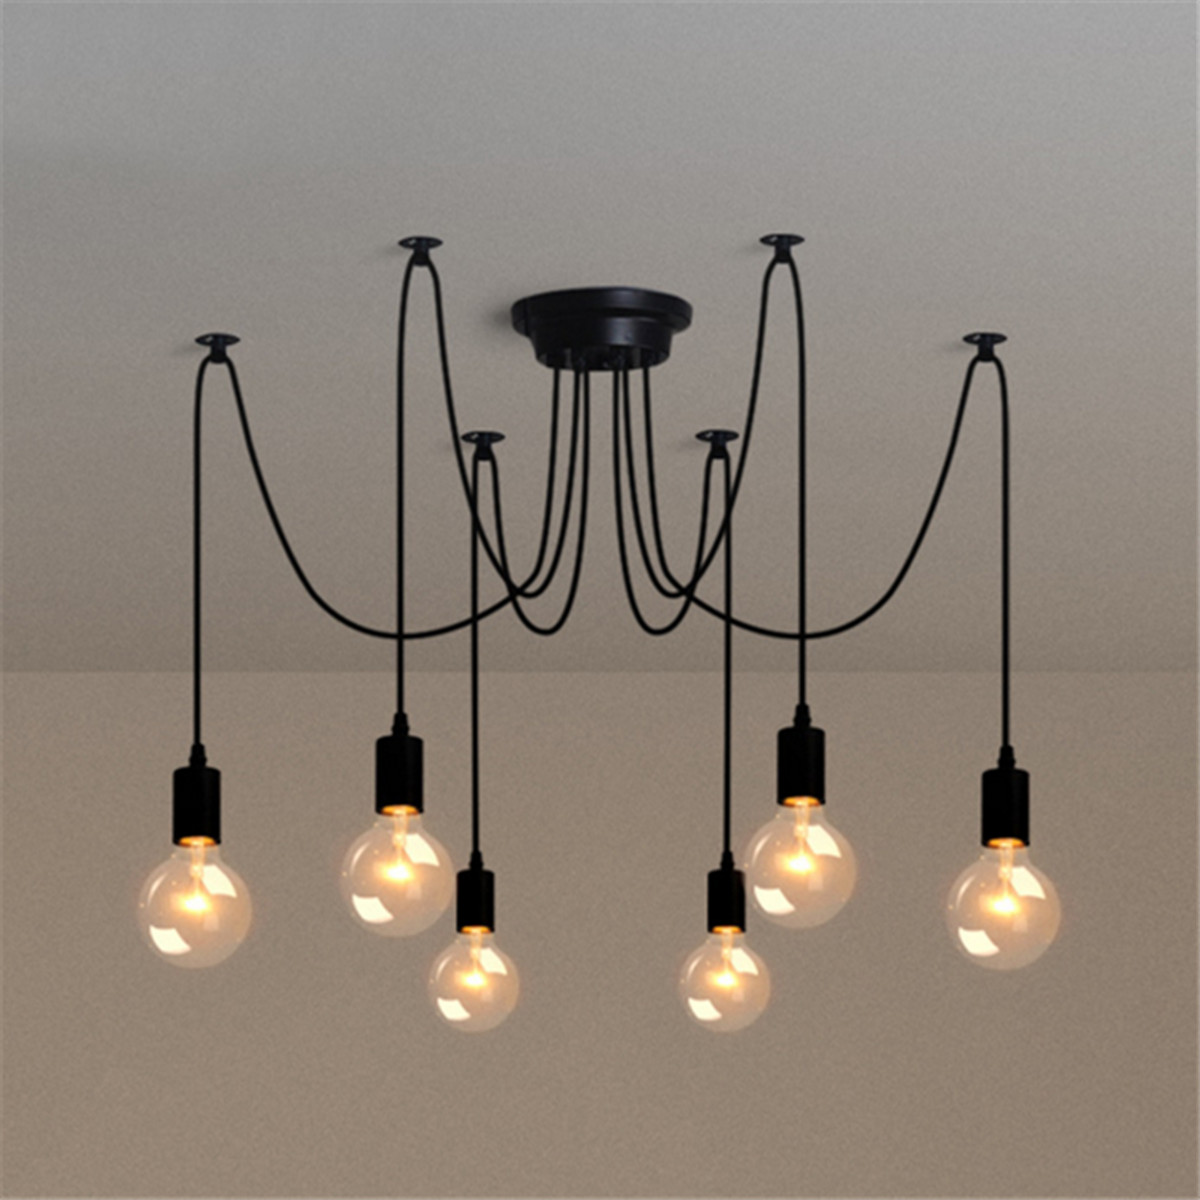 e27 lustre lampe de 6 t te douille suspendu plafonnier luminaire sans ampoule achat vente. Black Bedroom Furniture Sets. Home Design Ideas